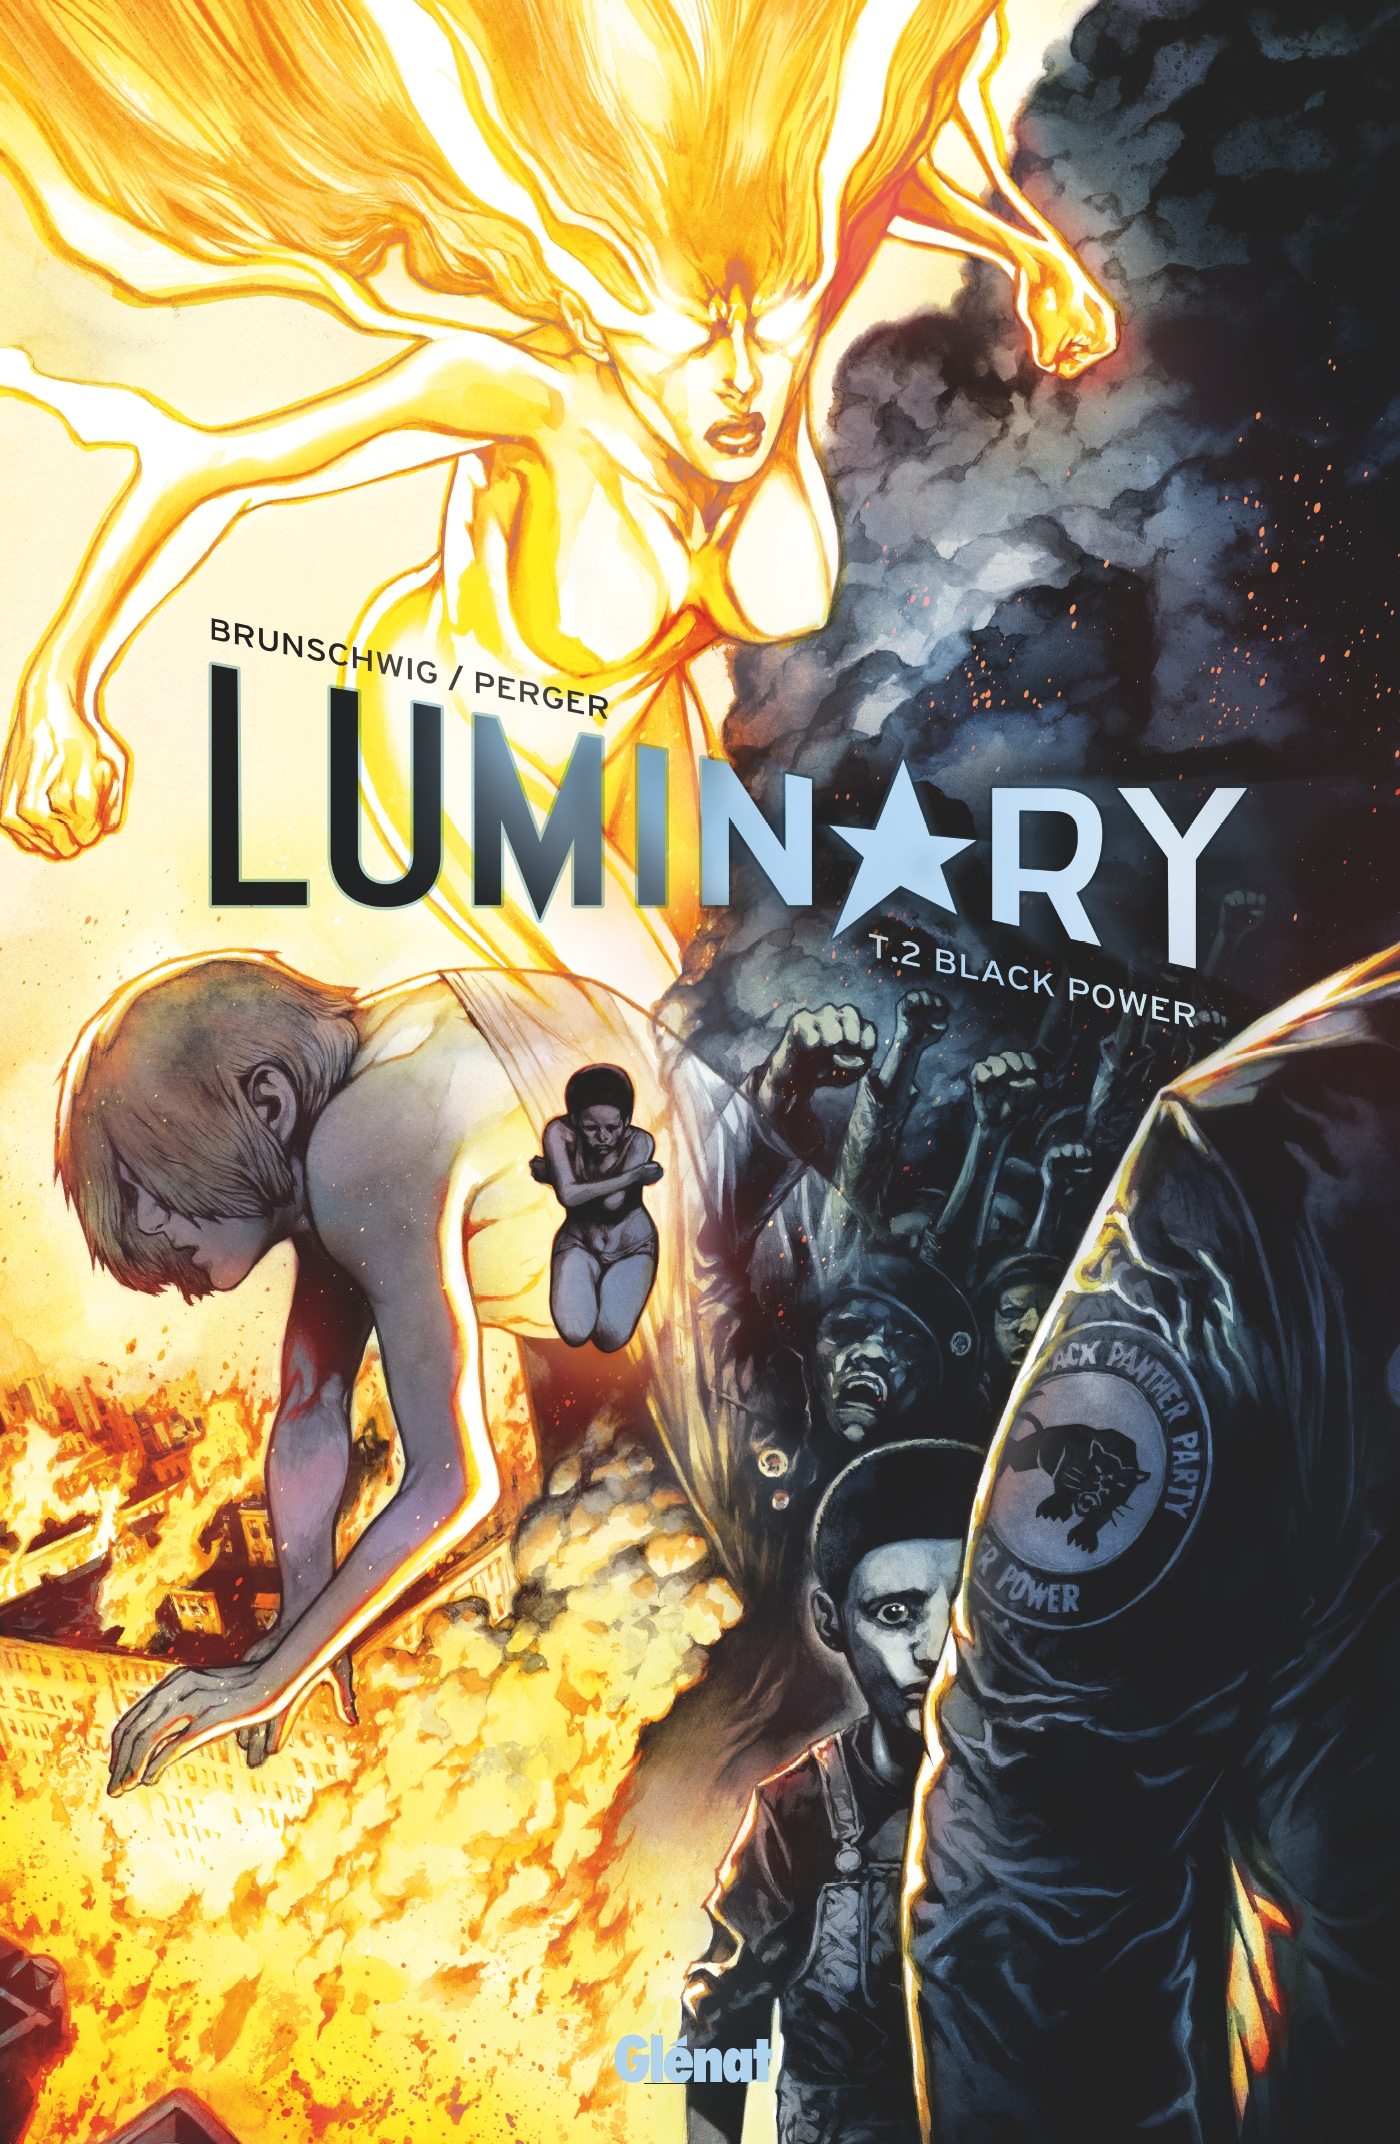 Luminary 2 - Black power